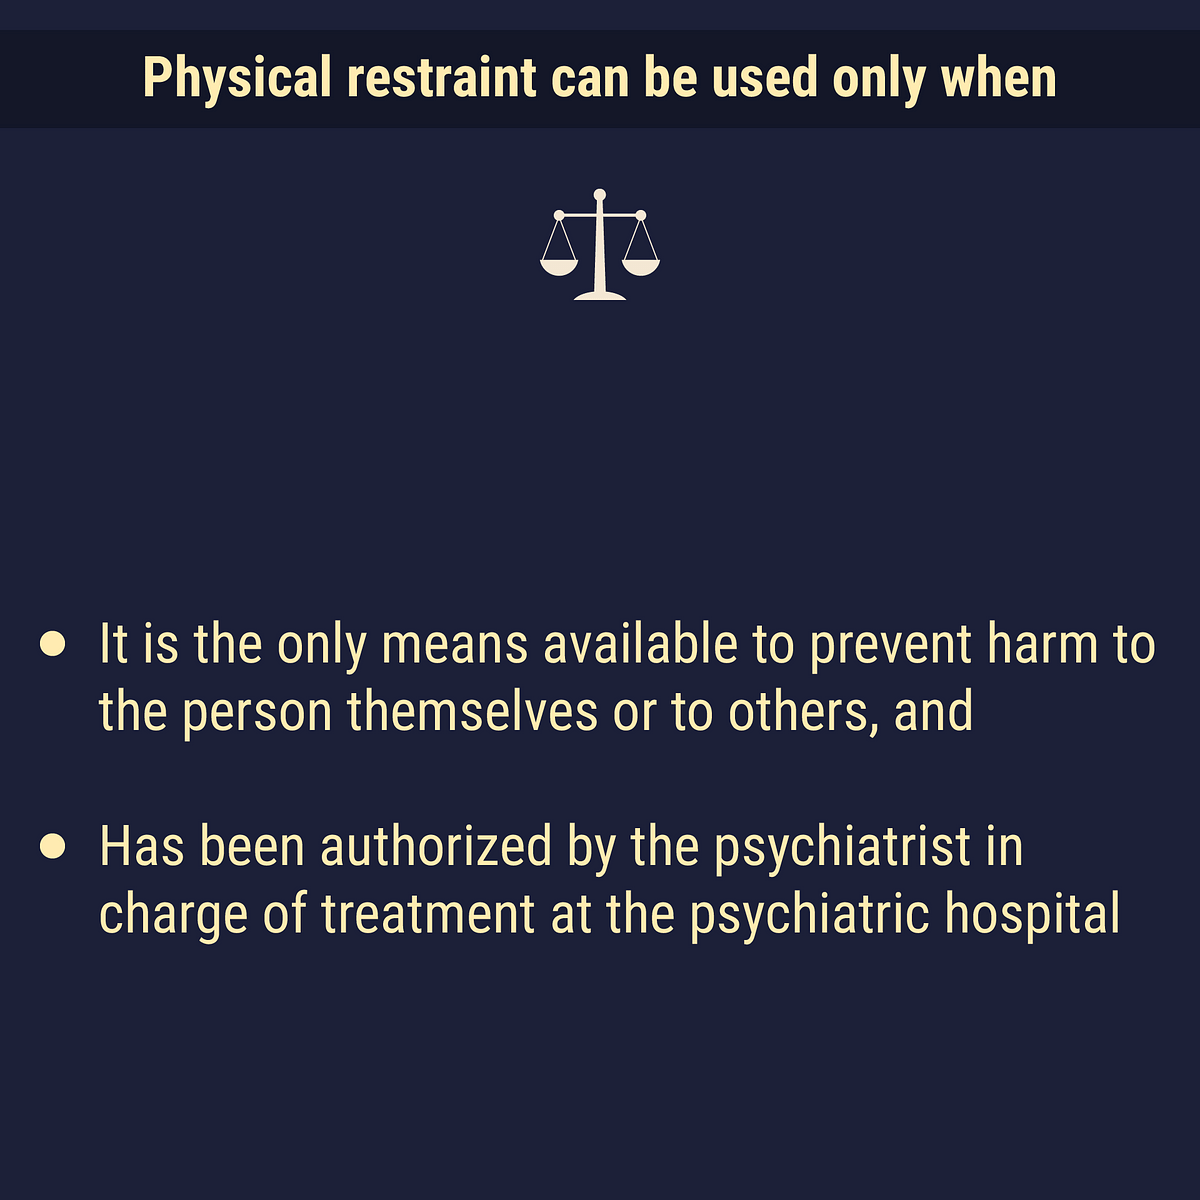 When can physical restraint be used?